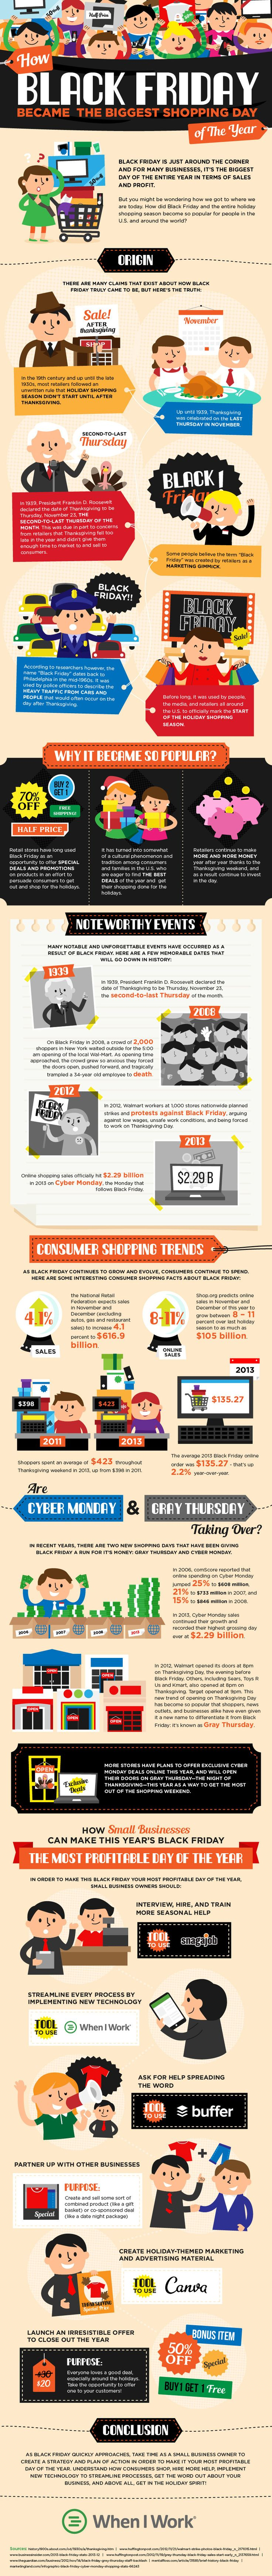 Infographic: How Black Friday Became The Biggest Shopping Day of The Year - @visualistan